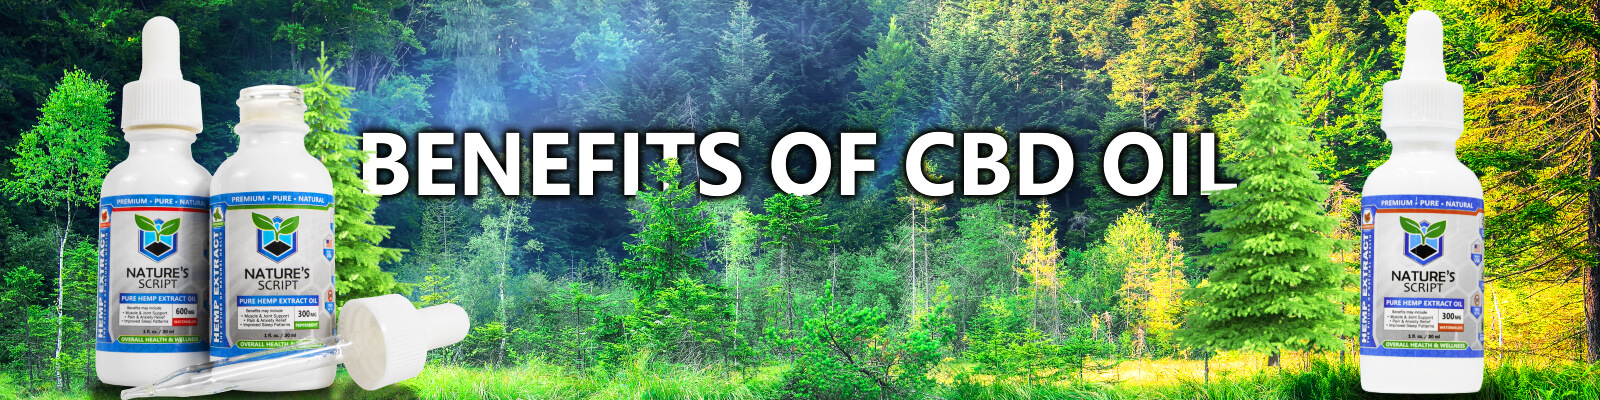 forrest of trees cbd oil benefits banner